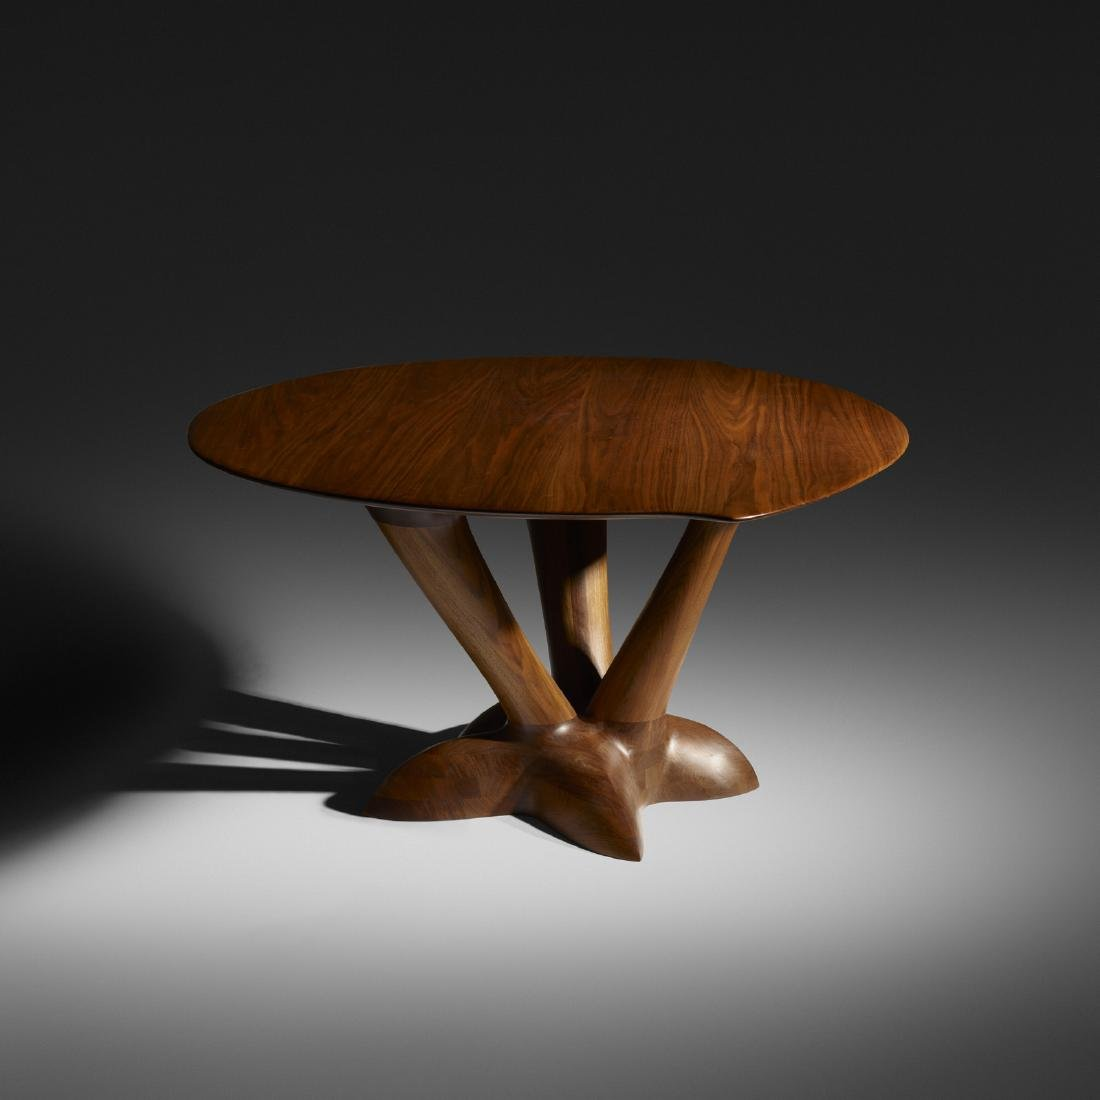 Wendell Castle, Echo dining table